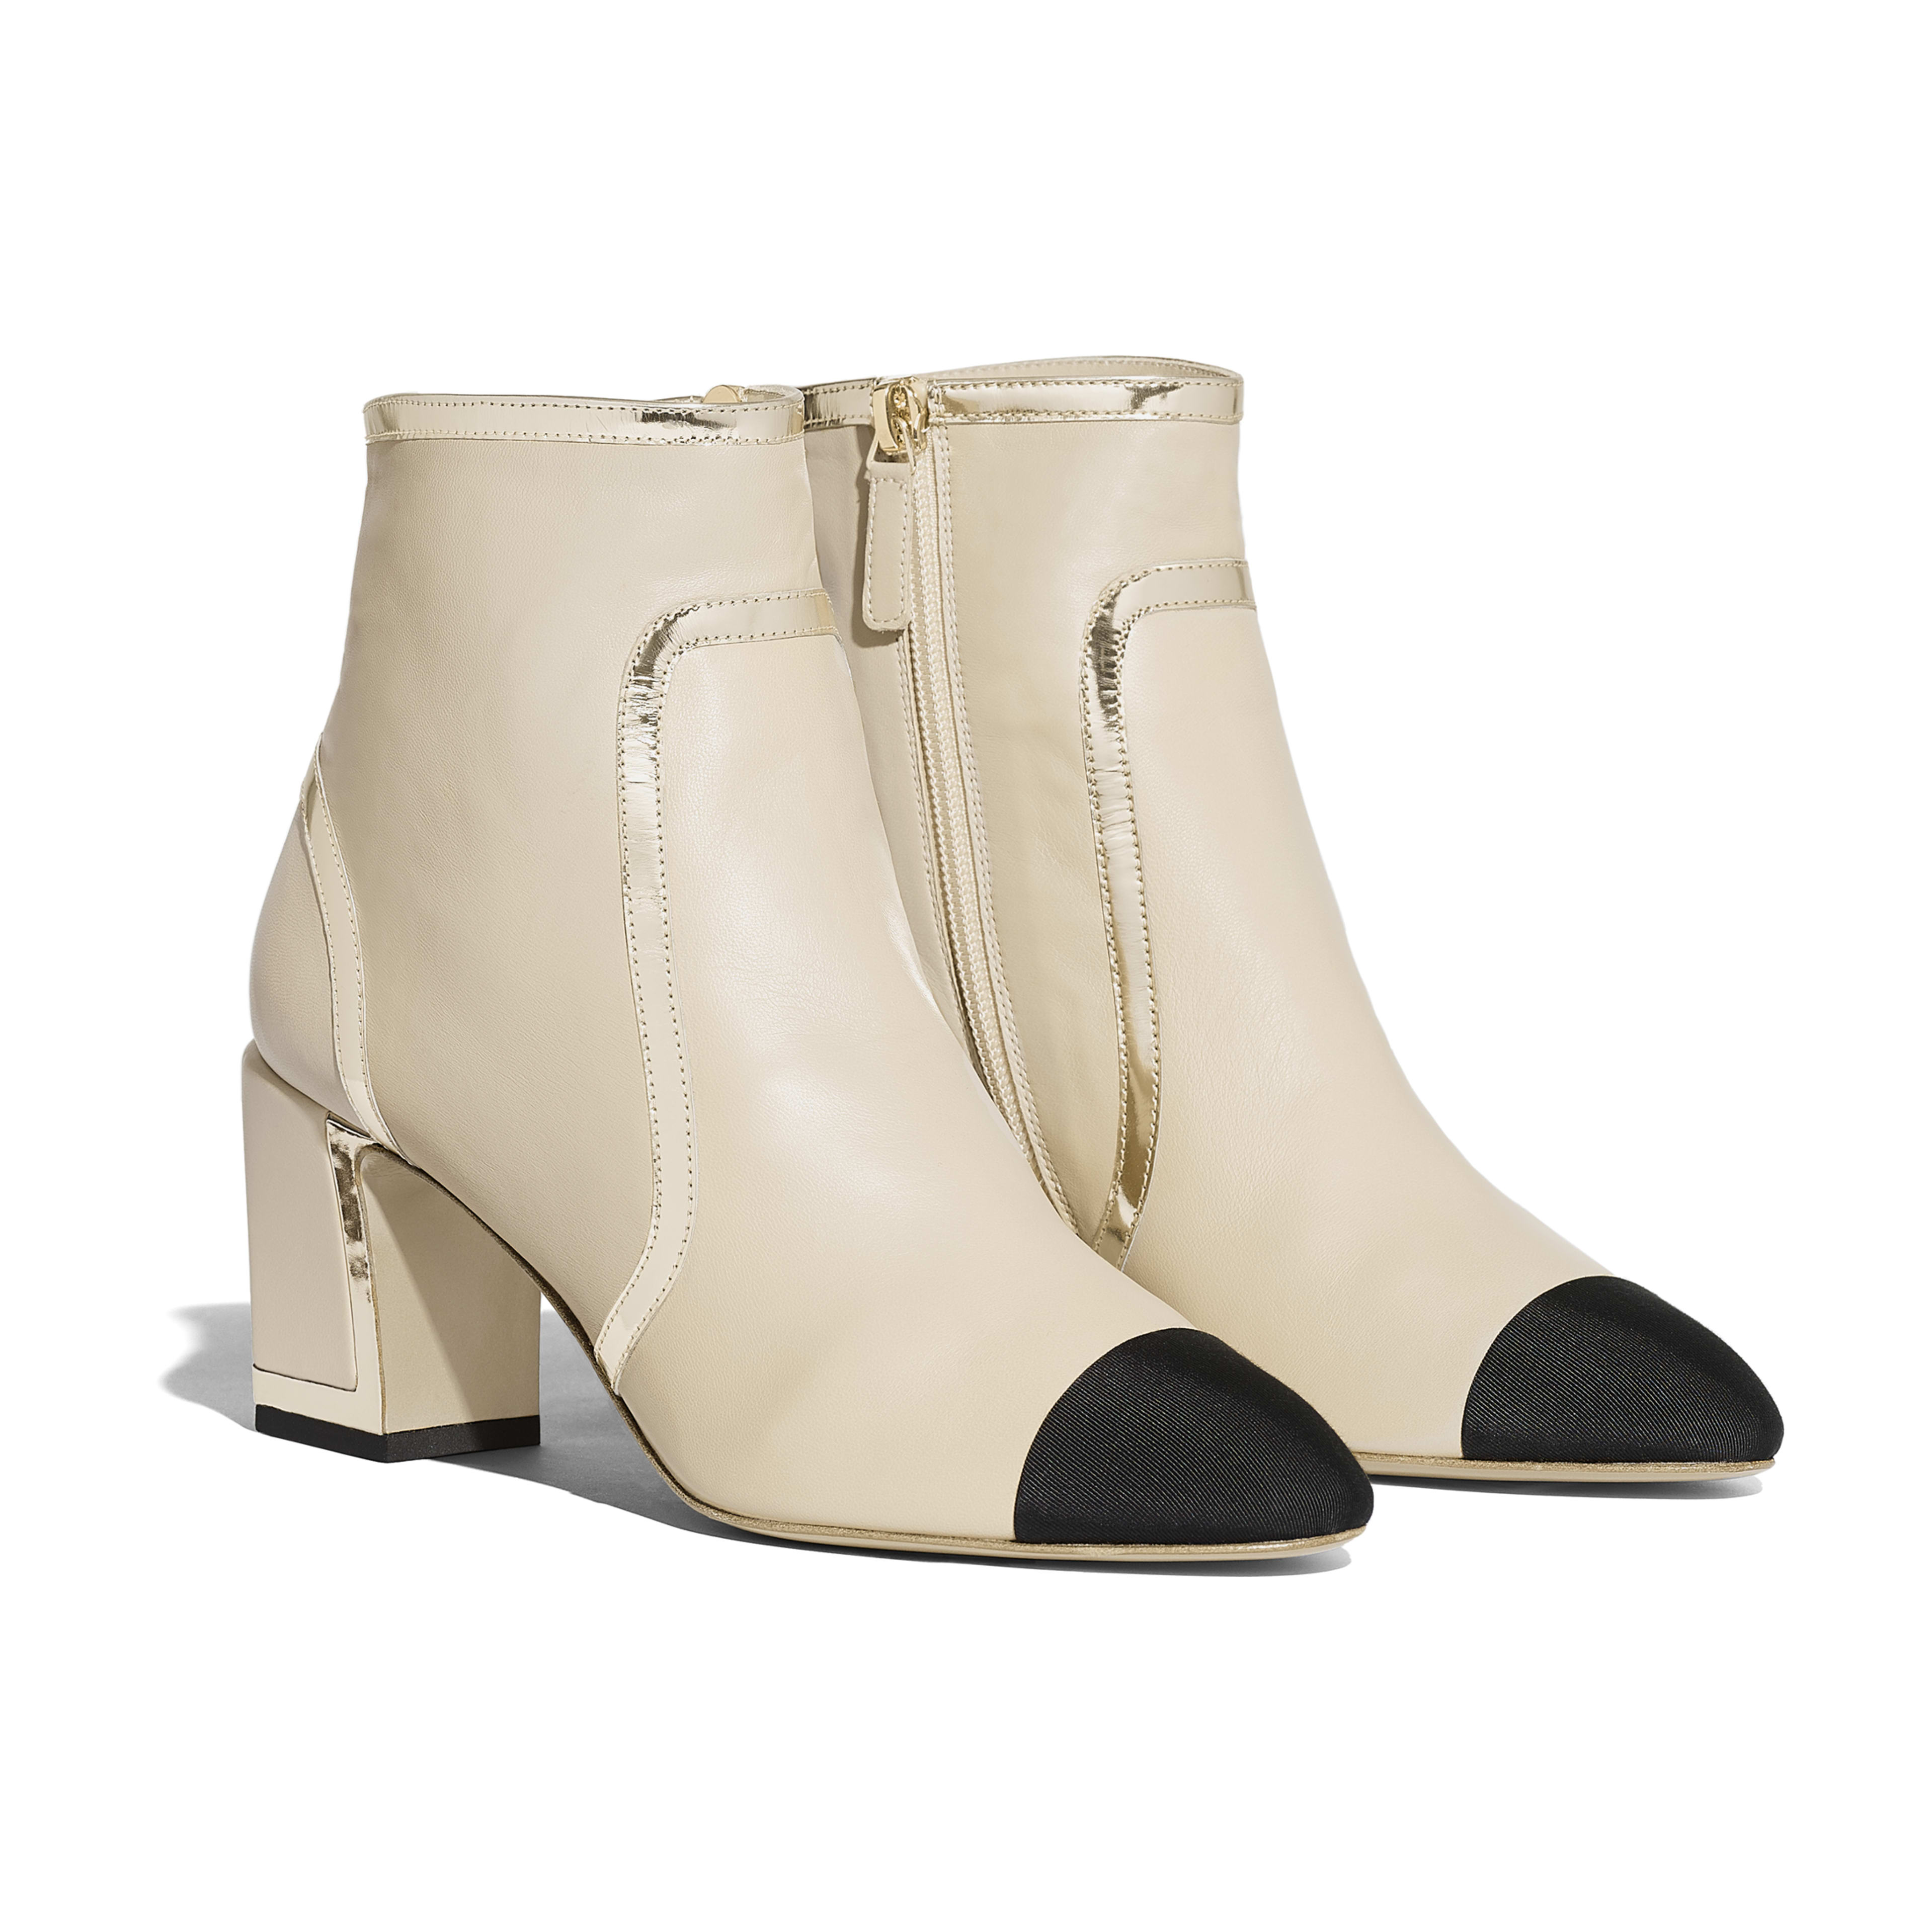 Ankle Boots - Beige & Black - Laminated Lambskin - Alternative view - see full sized version